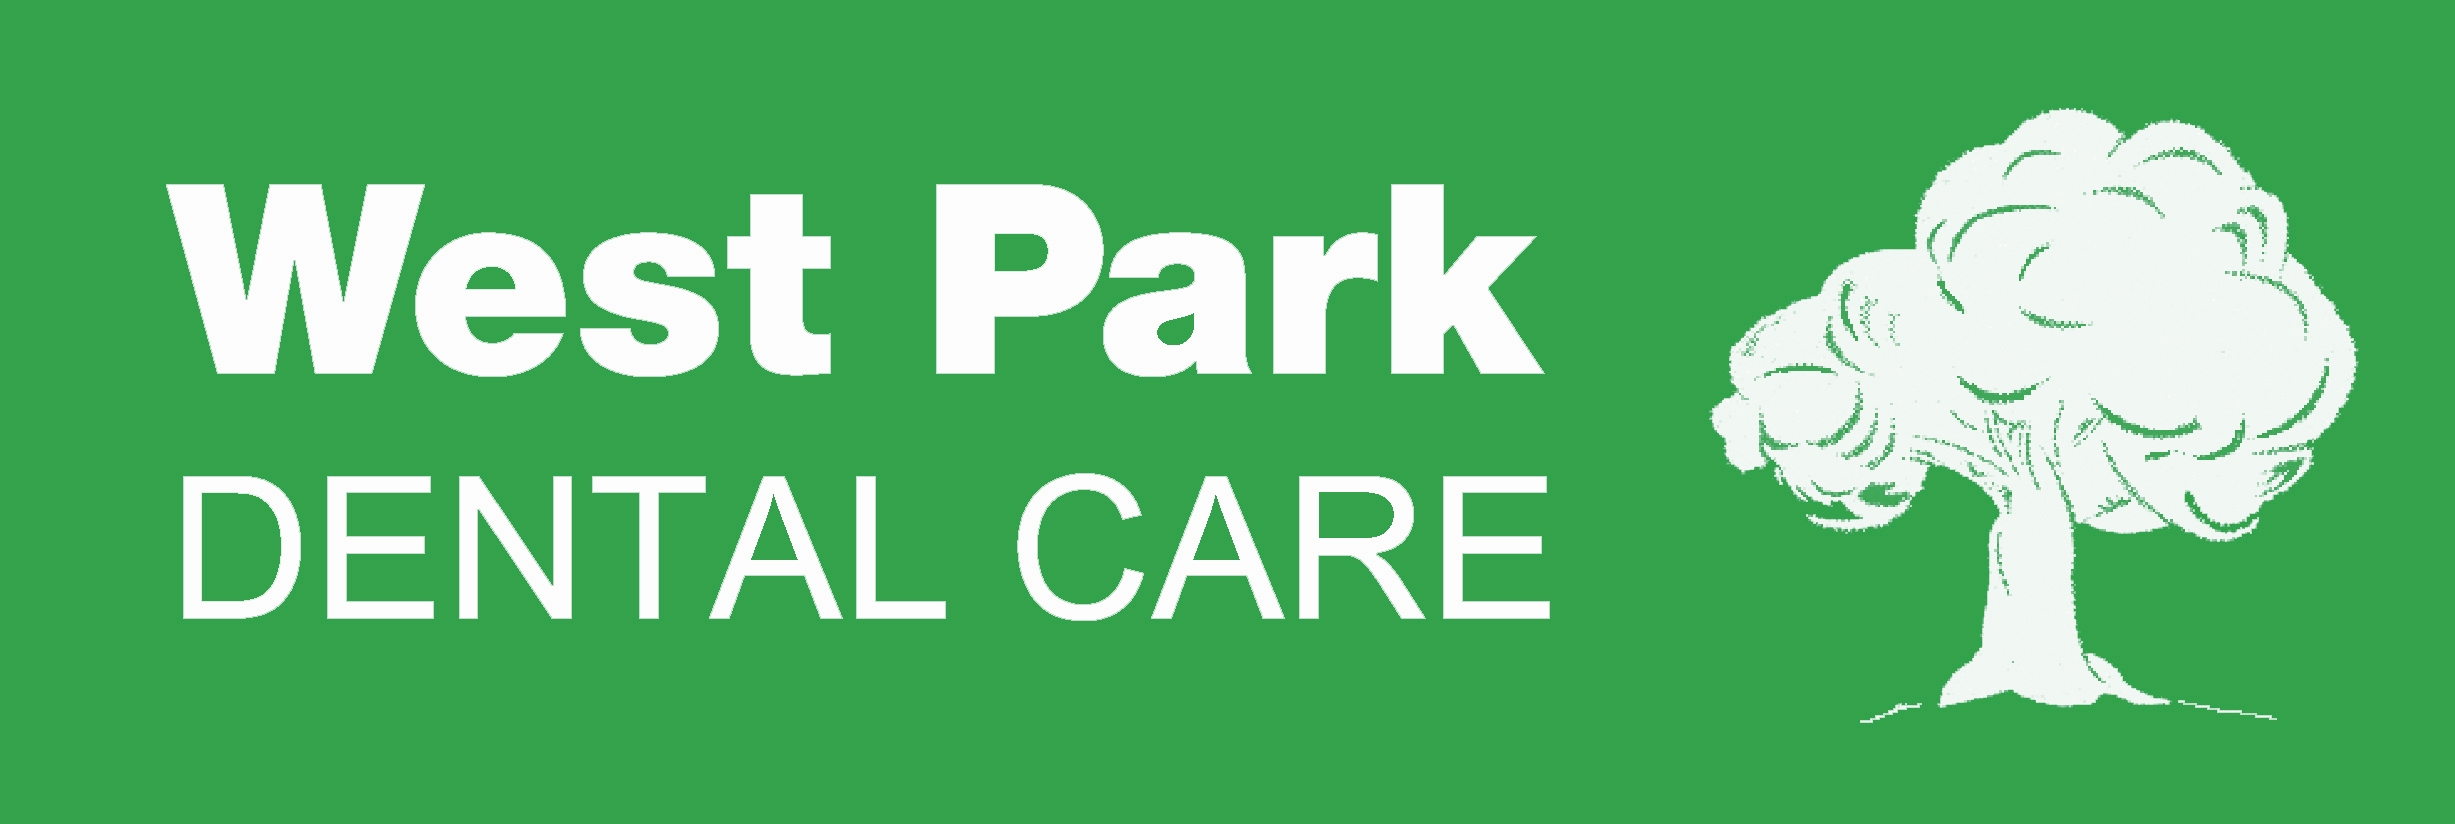 West Park Dental Care - Logo